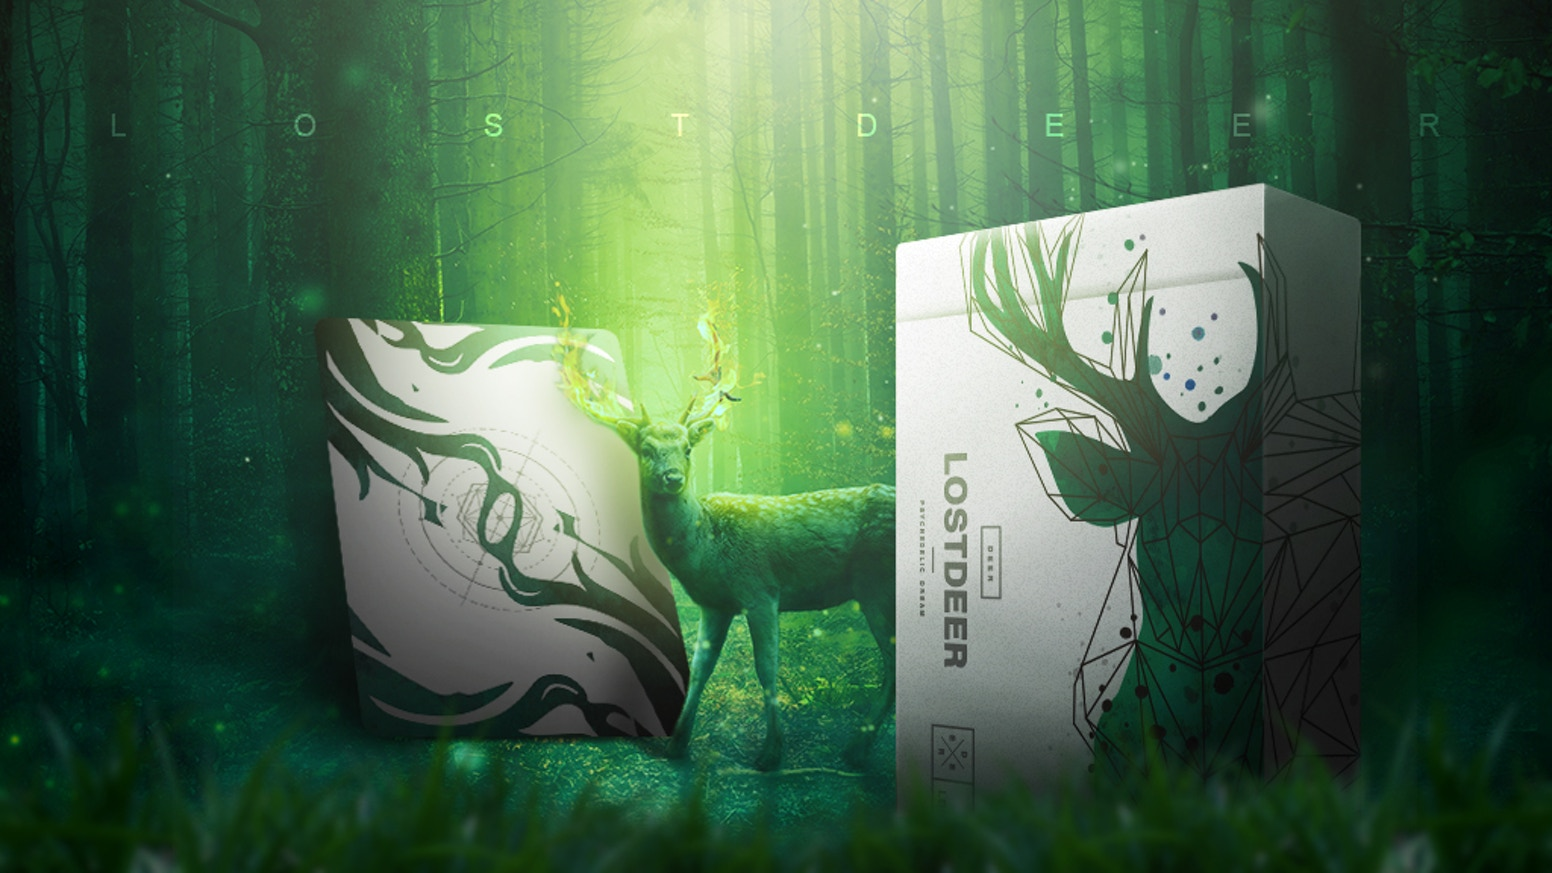 Lost Deer Forest Playing Cards By USPCC is the top crowdfunding project launched today. Lost Deer Forest Playing Cards By USPCC raised over $142907 from 410 backers. Other top projects include QUICKSTARTER: Pin Pages Restock Flocked Enamel Pins Storage, Brew Your Own Old Fashioned, Alcoholic Root Beer Naturally, O - Short Film...